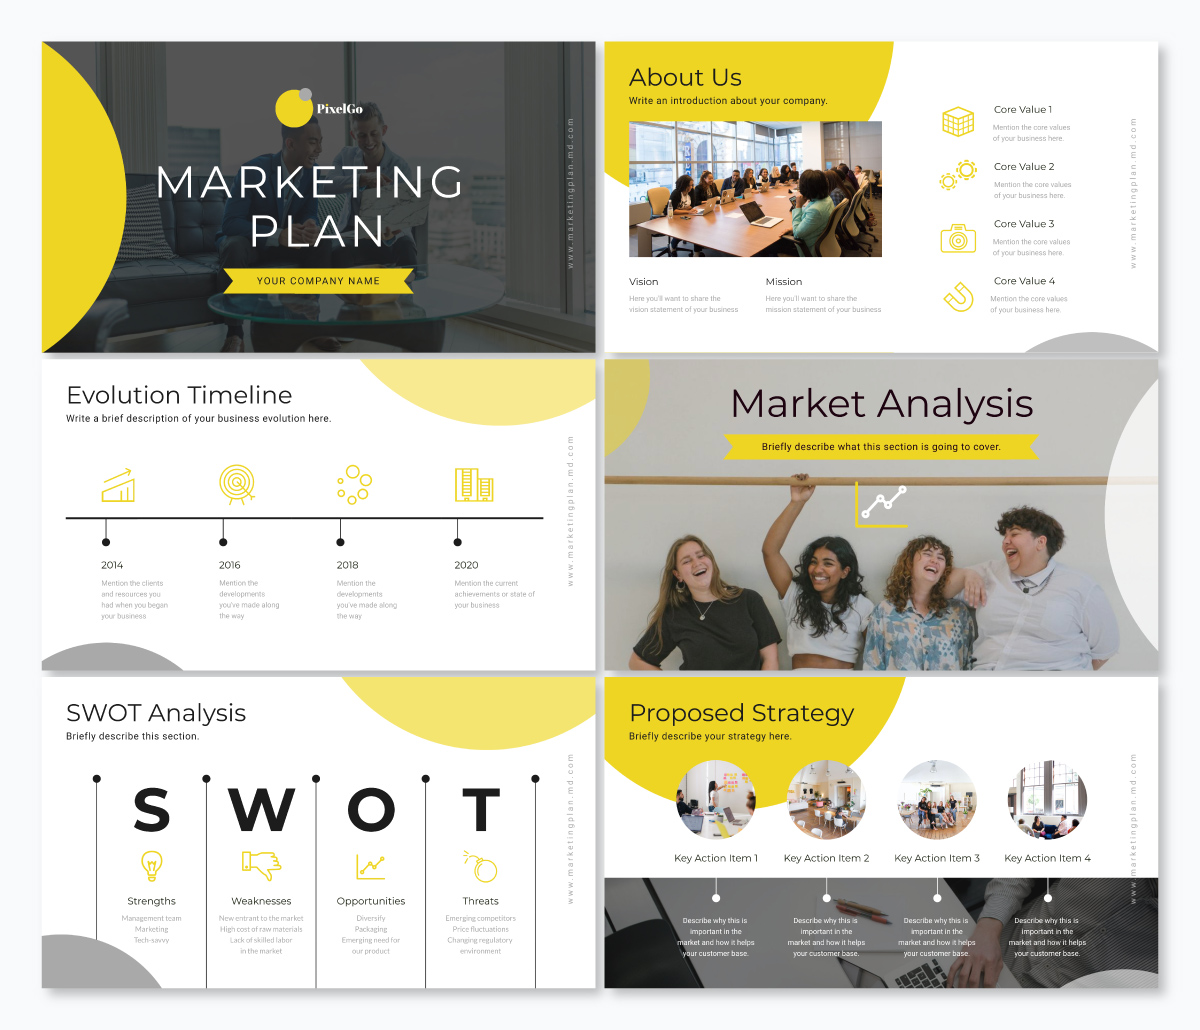 A marketing plan keynote template available in Visme.